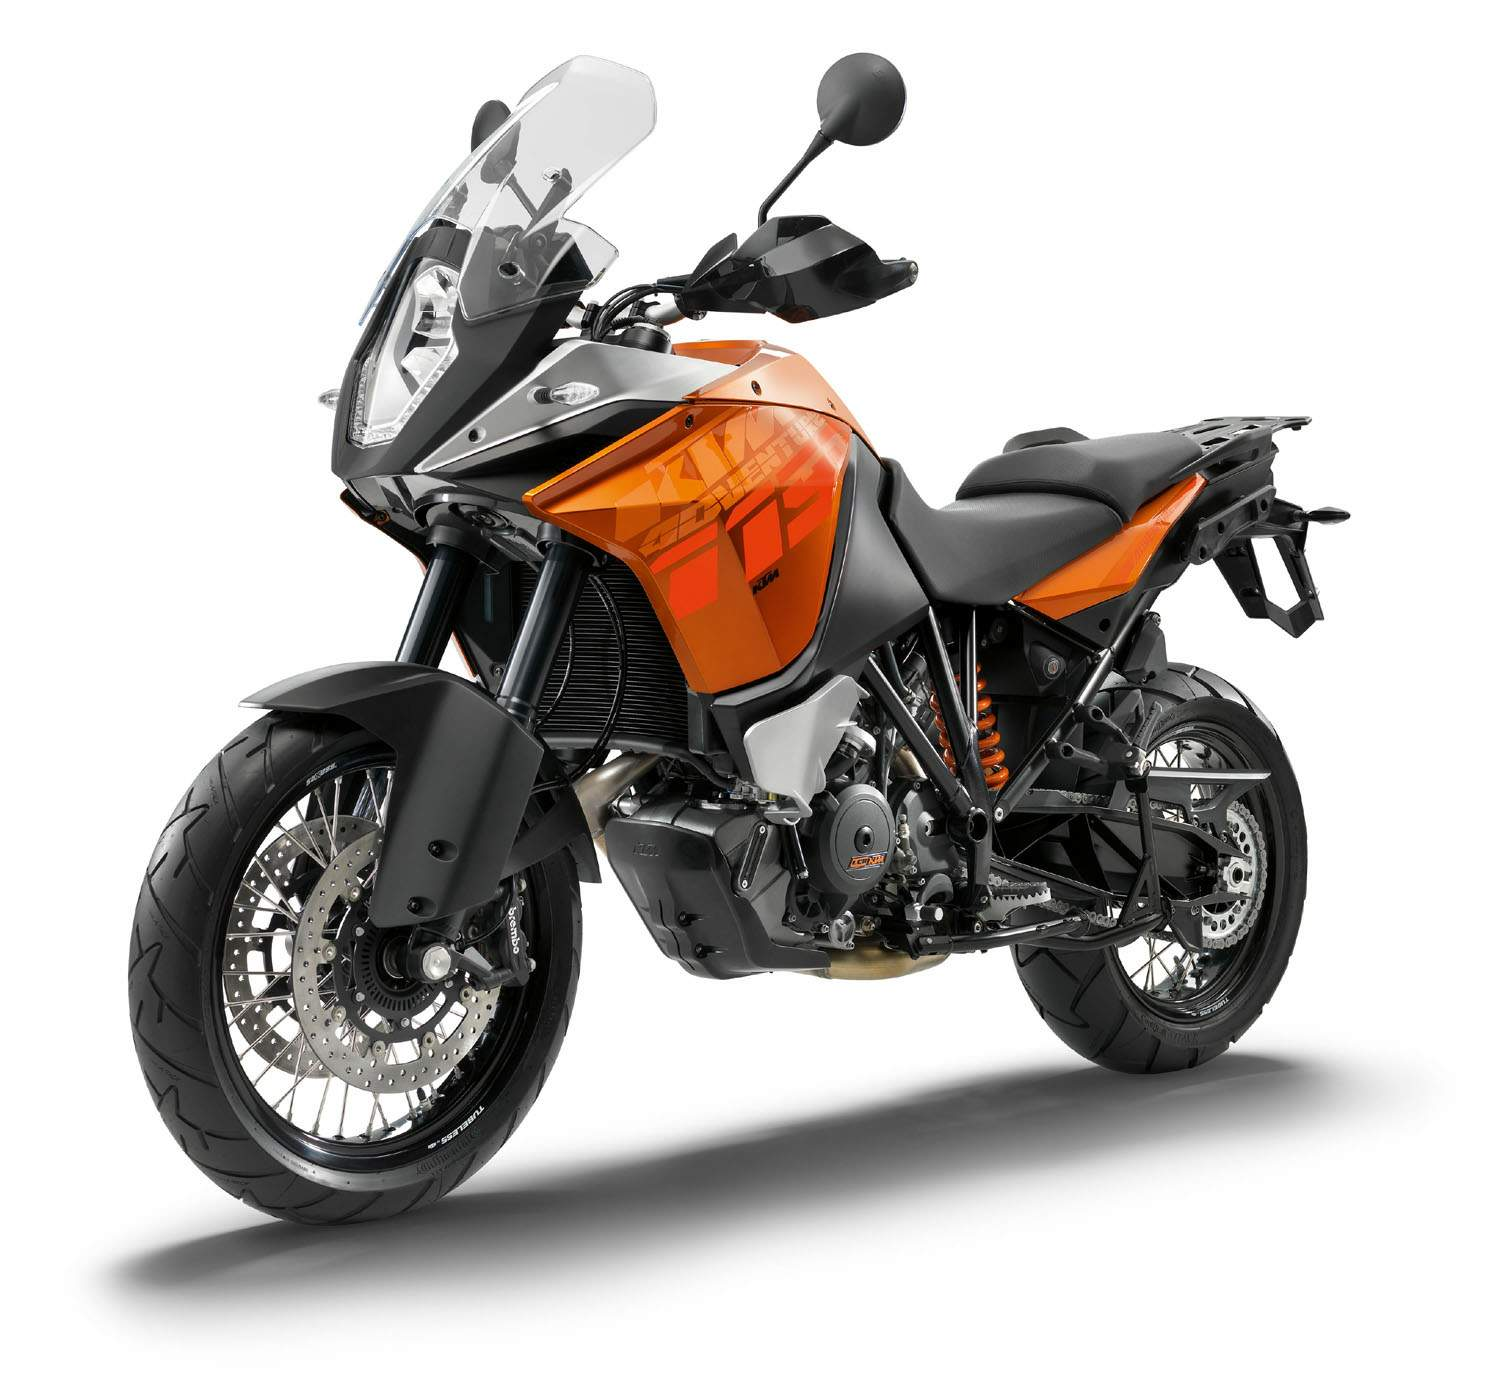 KTM 390 Adventure to be unveiled?